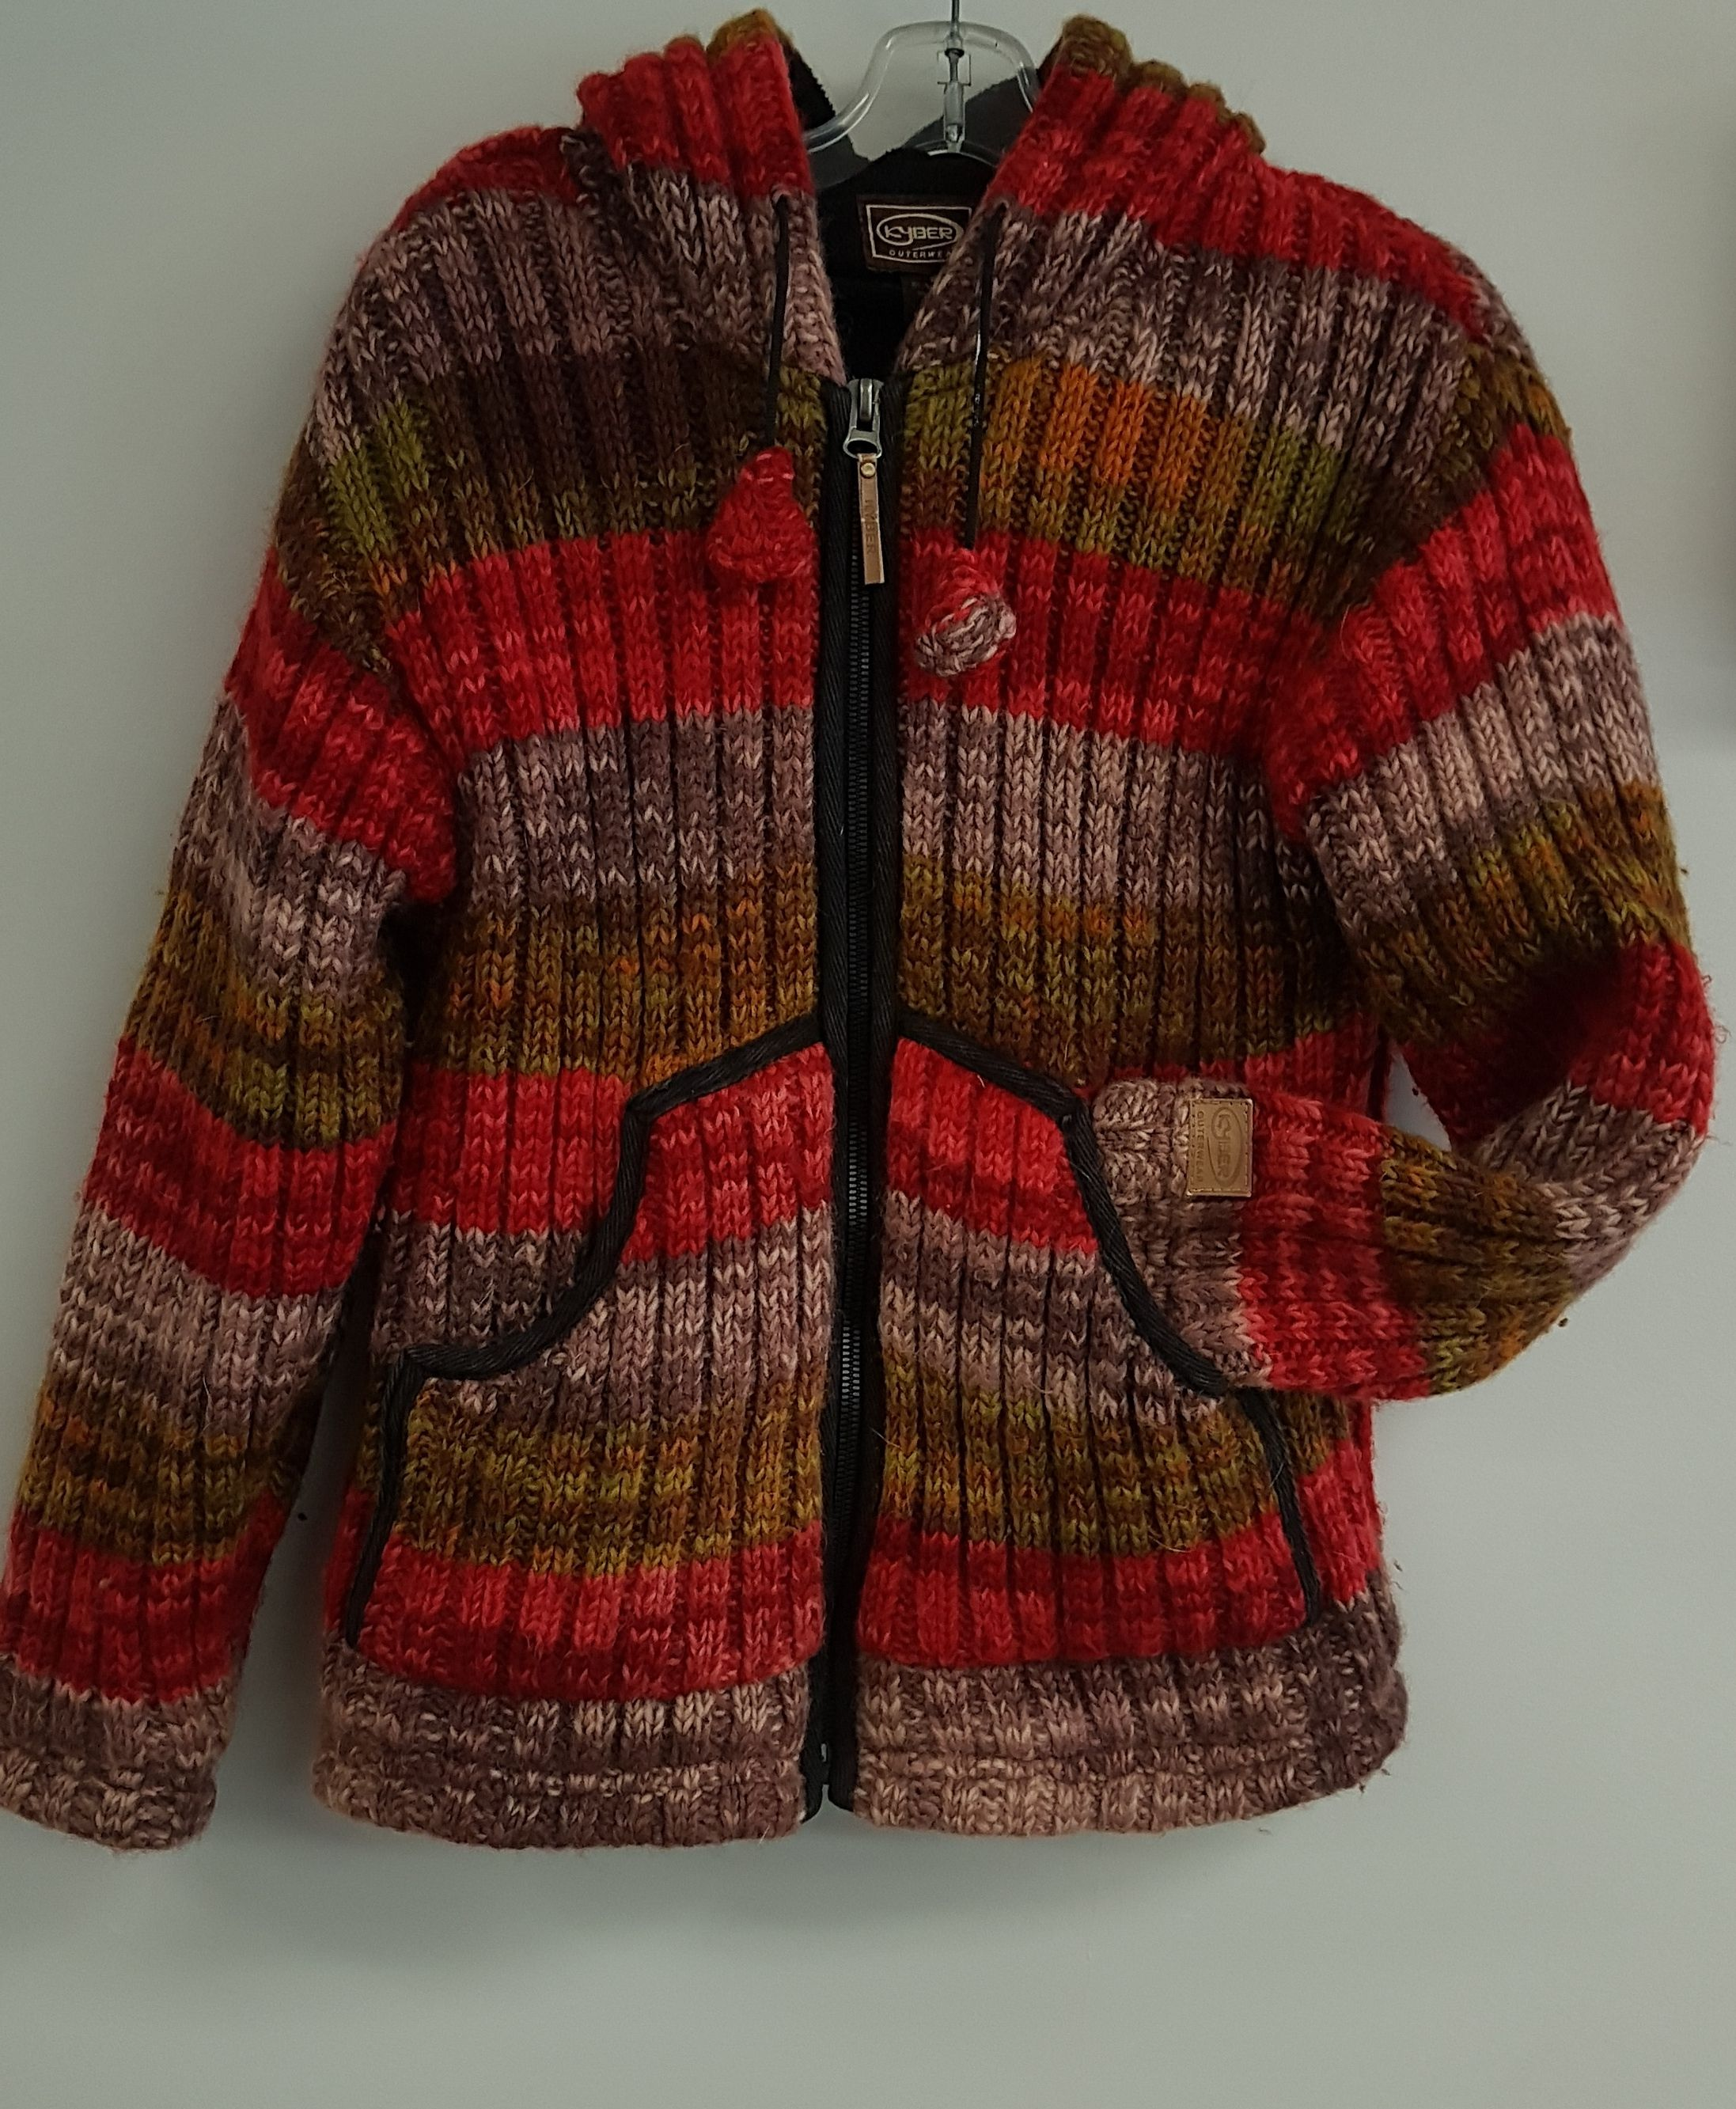 Kyber Outerwear Size Med 54 99 Sweaters Outerwear Colorful Sweaters [ 2665 x 2194 Pixel ]